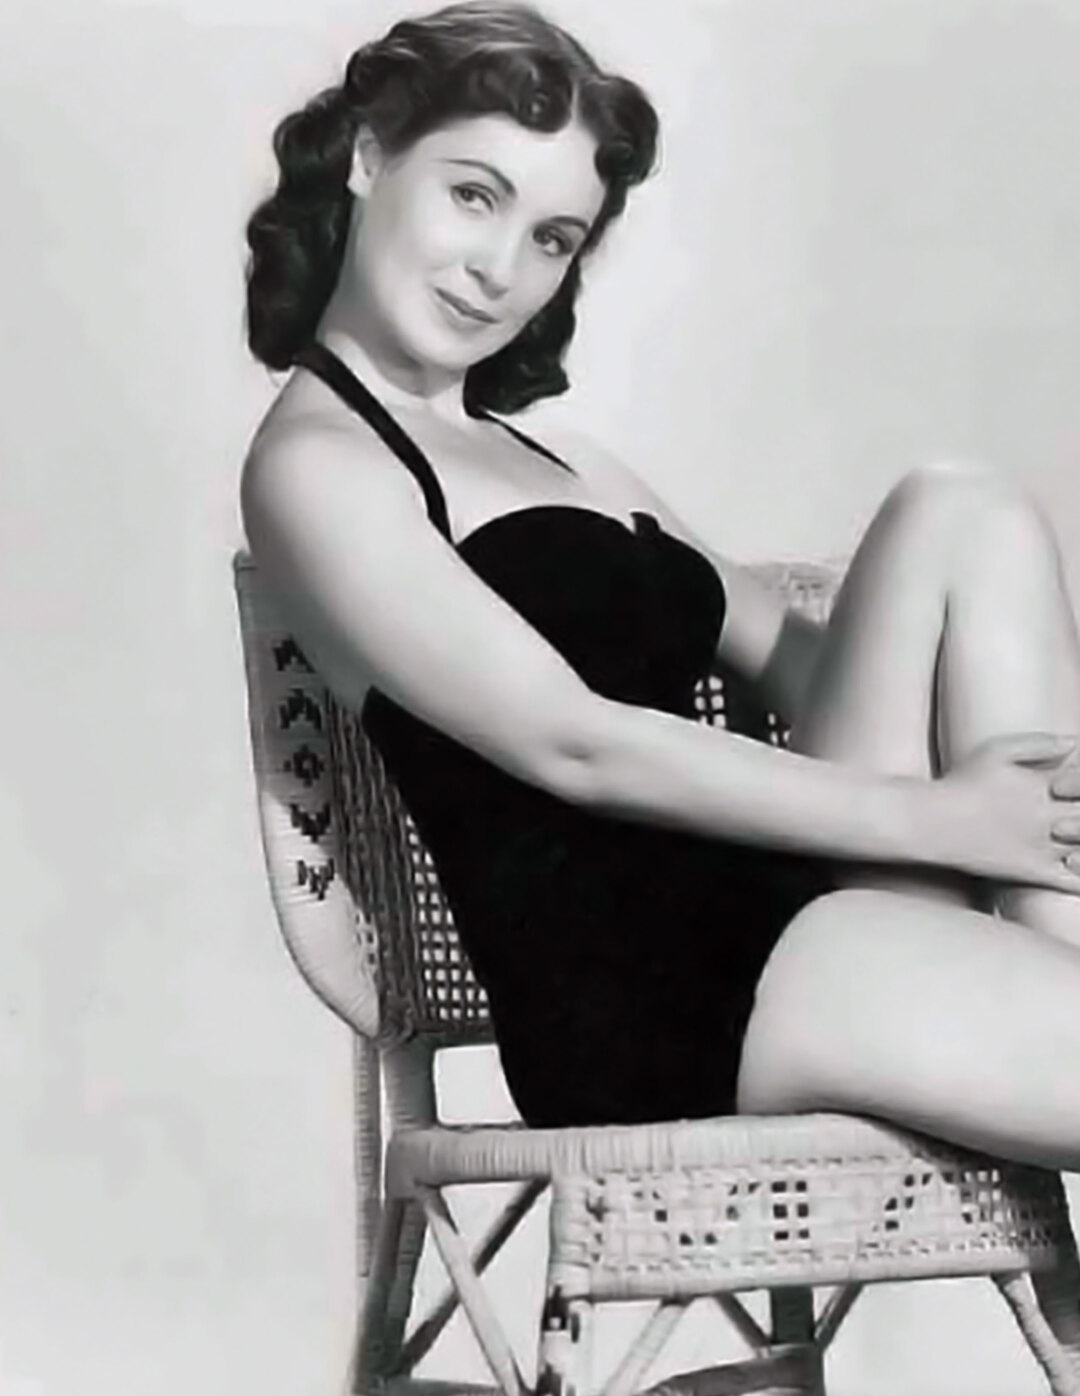 Actress Susan Cabot Was Mercilessly Killed at 59 by Her Only Son Who Accused Her of Attacking First!